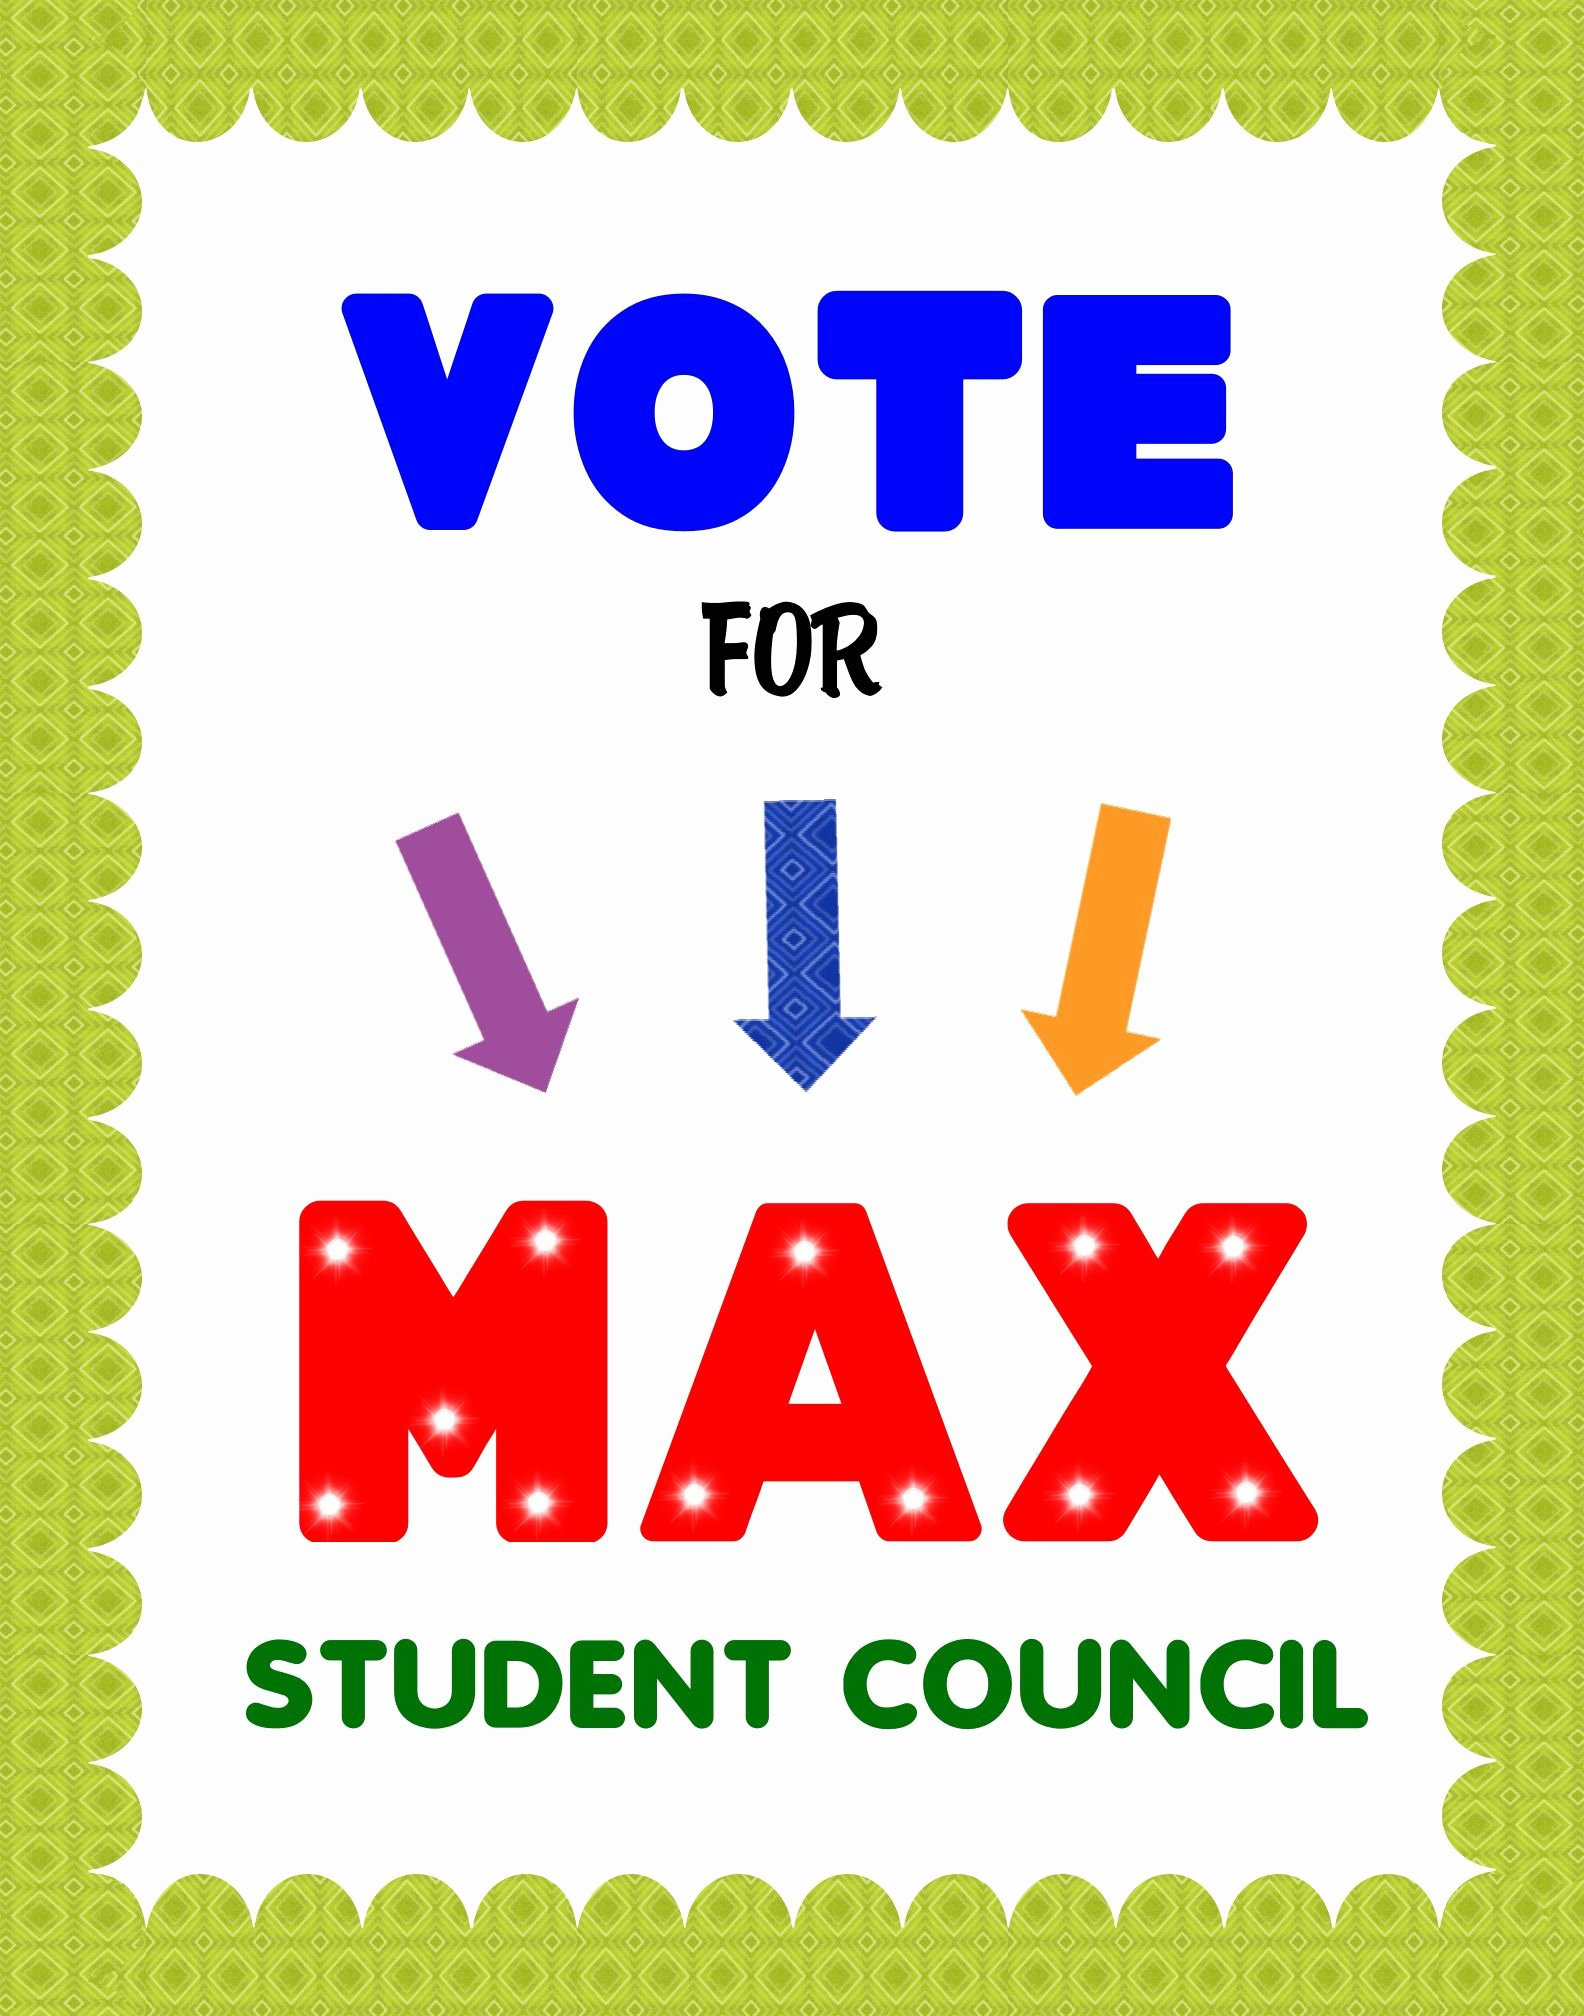 Posters for Student Council Elegant Create A Vote for Student Council Poster Election Campaign Poster Ideas